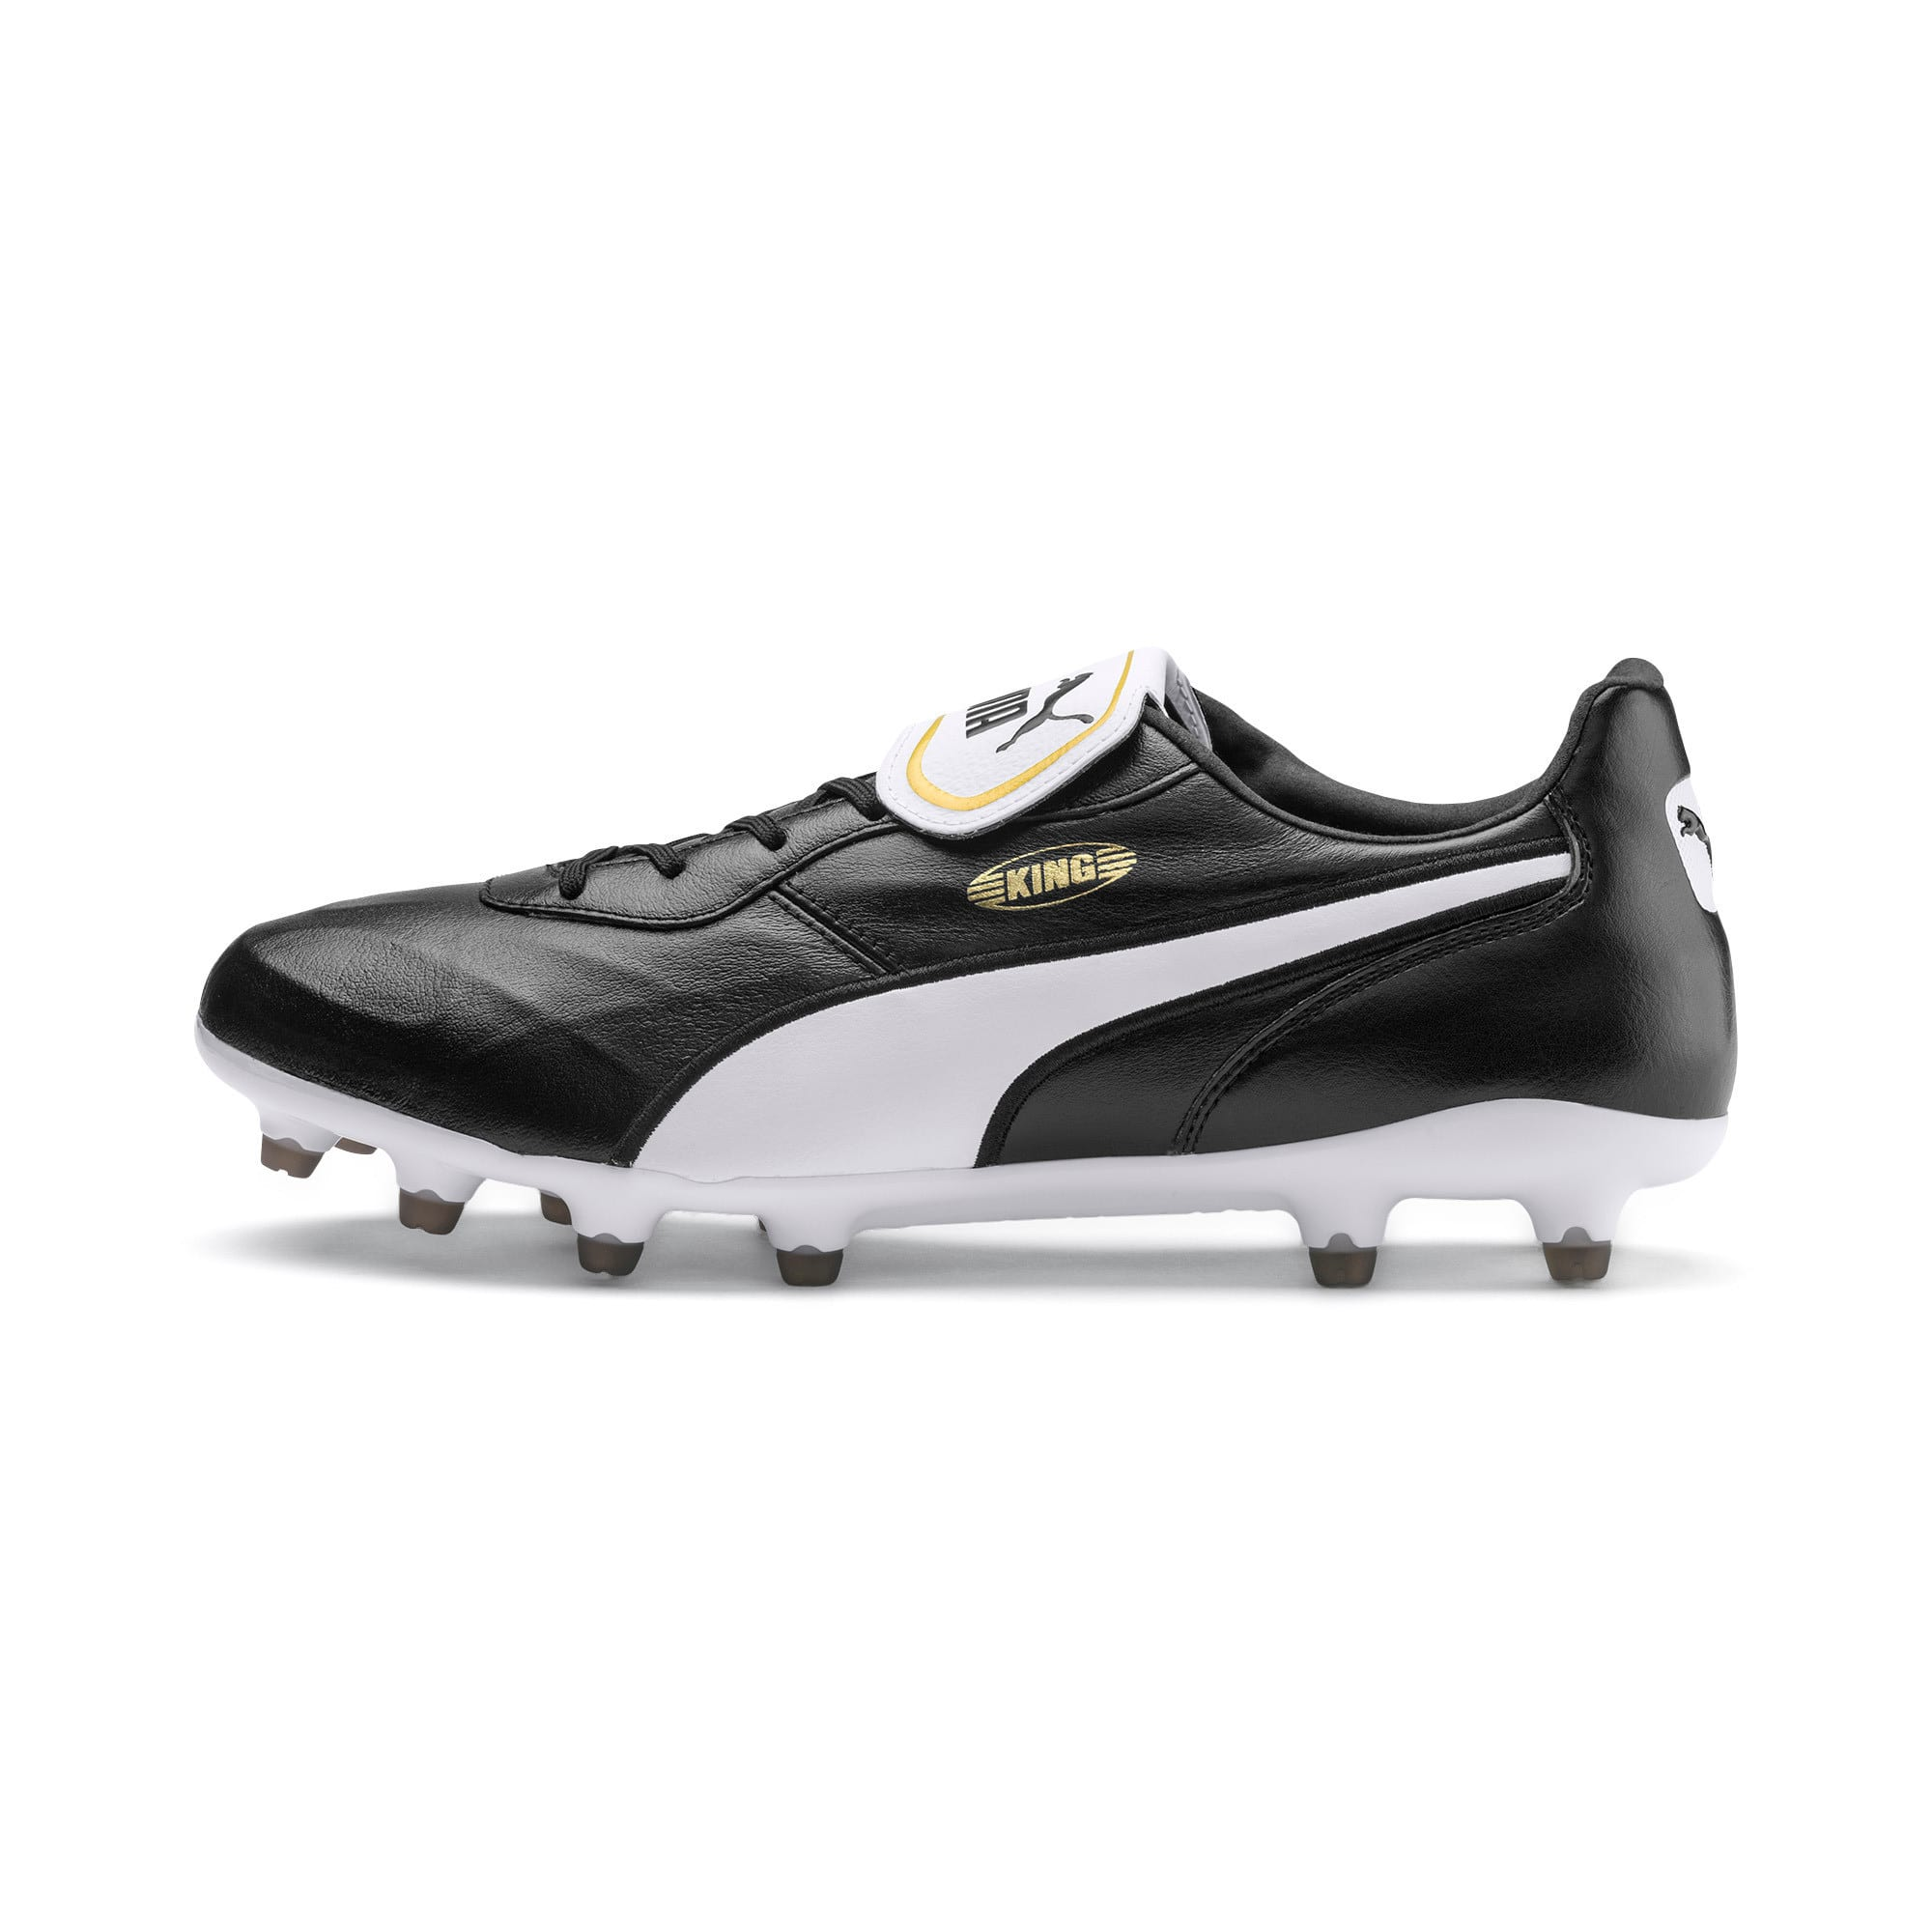 Thumbnail 1 van KING Top FG voetbalschoenen, Puma Black-Puma White, medium